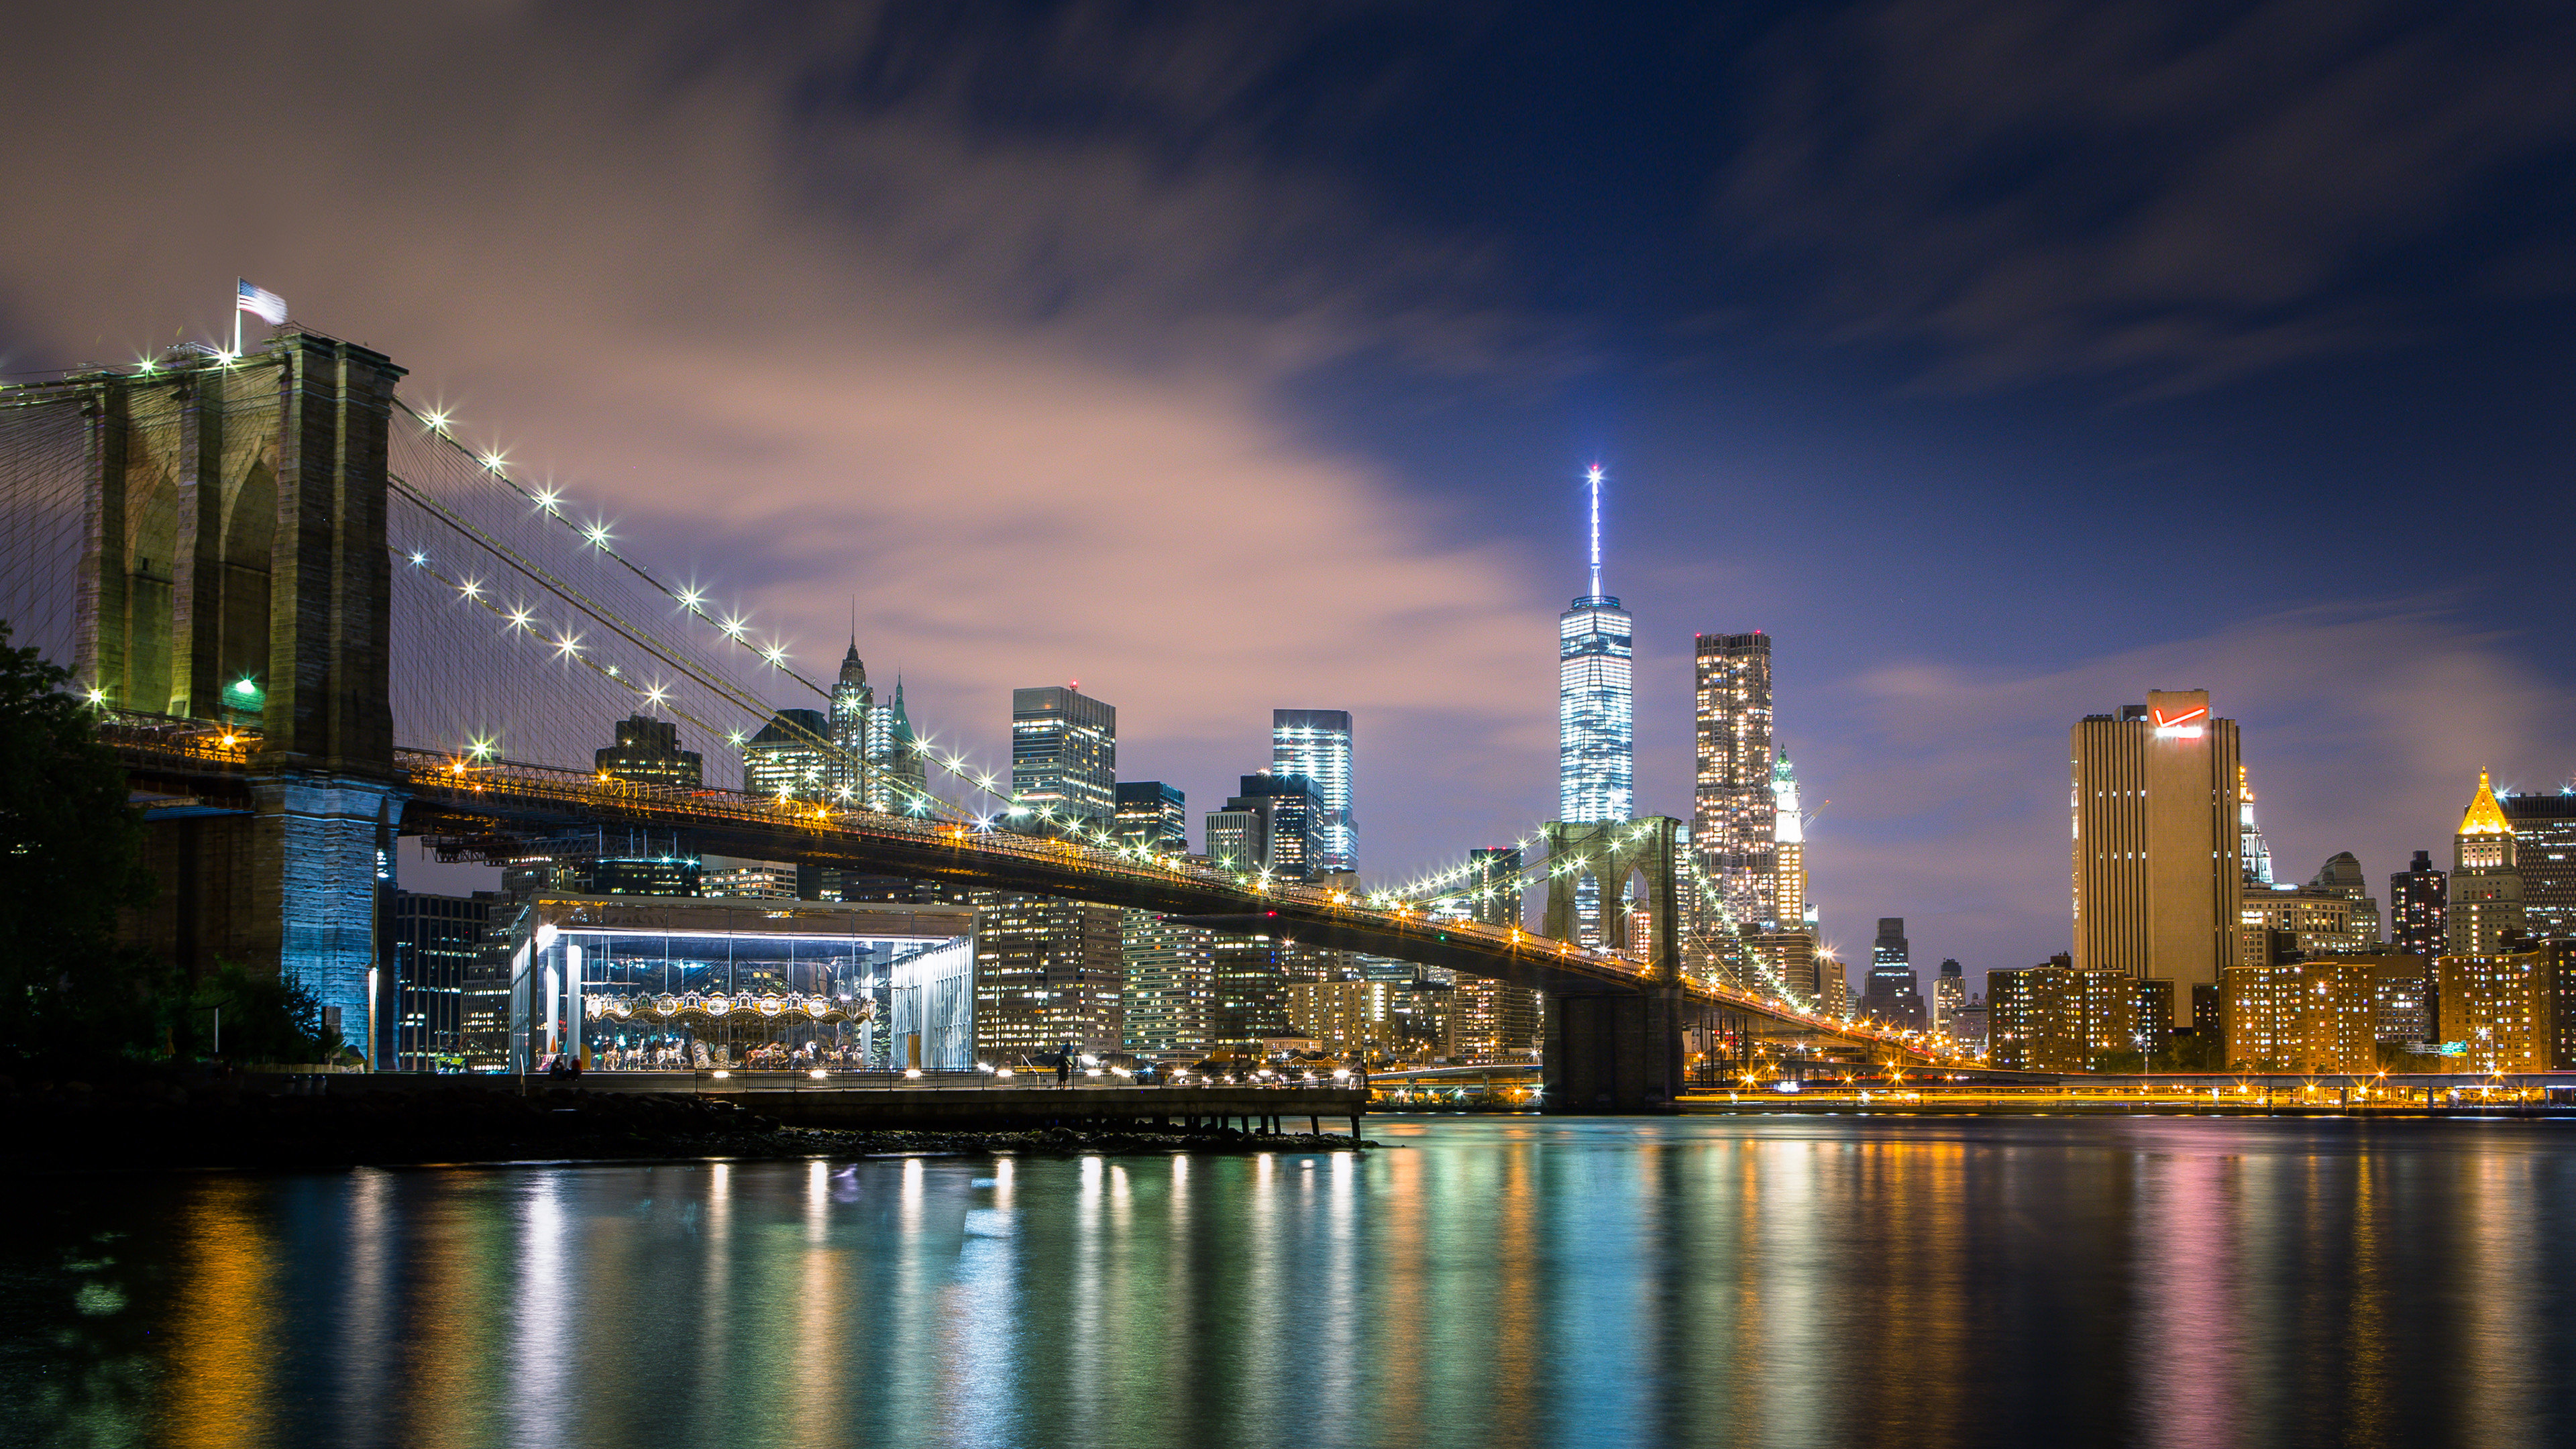 New york 4k ultra hd wallpaper 3840x2160 for Immagini new york hd